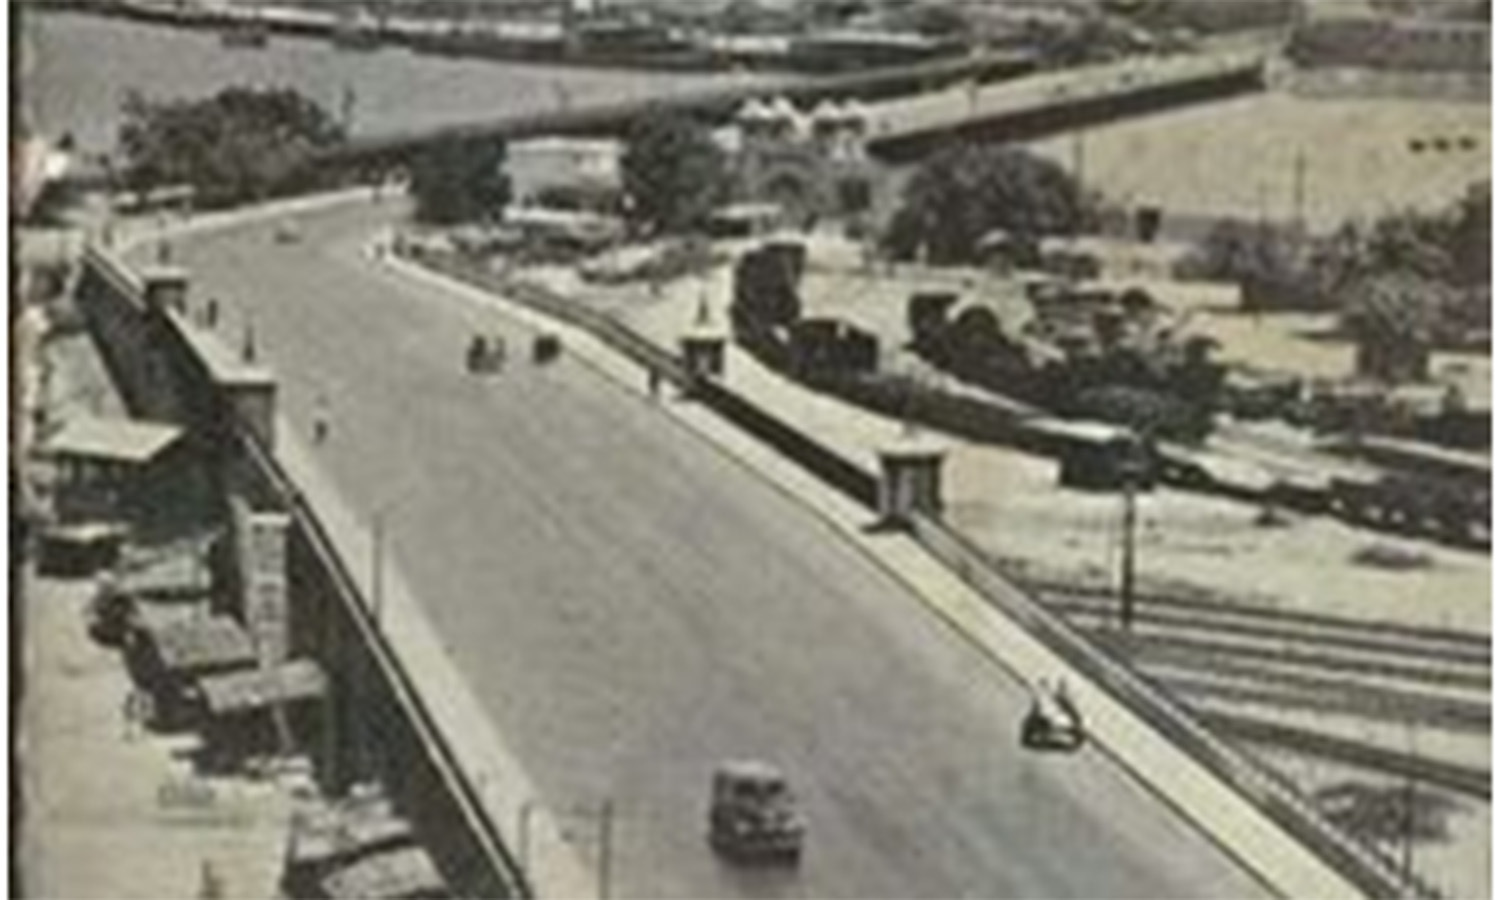 The Native Jetty Bridge in 1957. It begins where Queens Road ends. It was built in 1954. It connects the city to the Karachi Port.